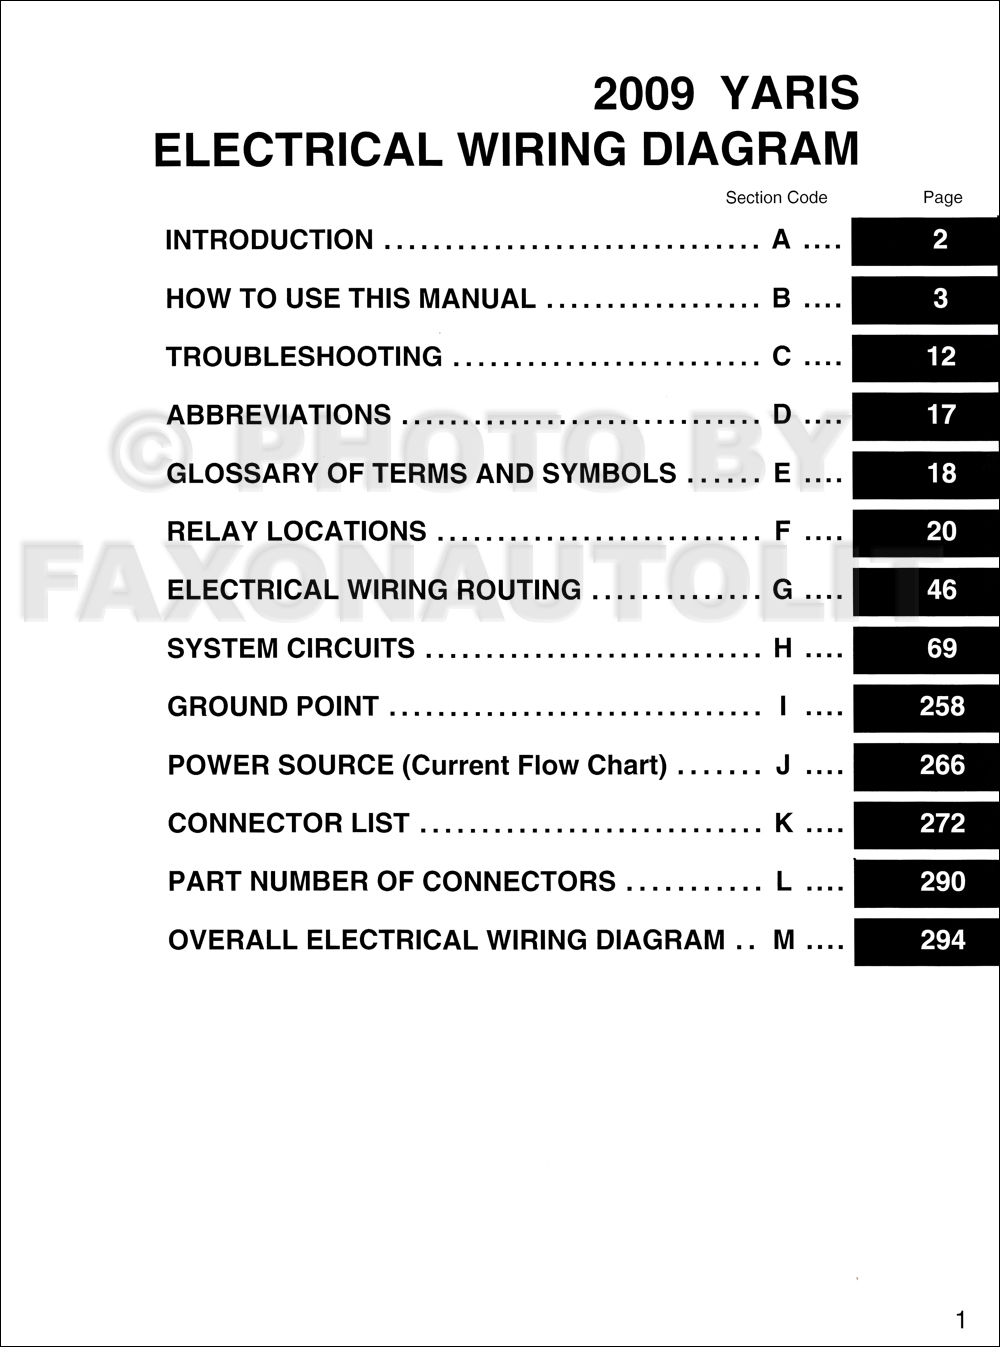 2010 Toyota Camry Electrical Wiring Diagram Manual Library Ikon Governor 2009 Yaris Original Click On Thumbnail To Zoom